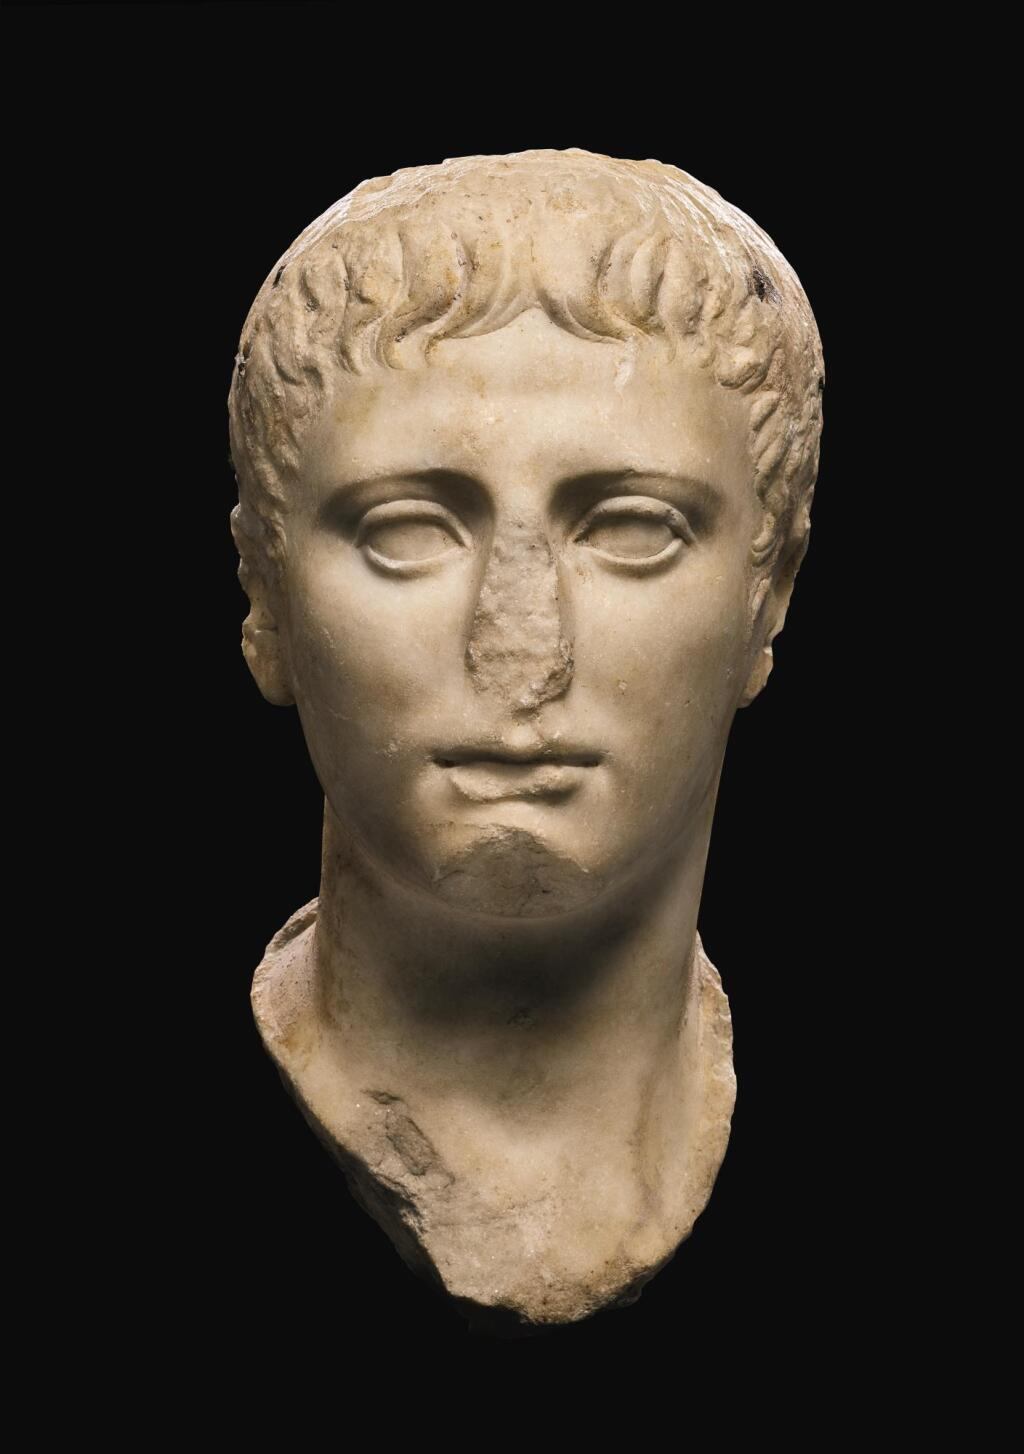 A ROMAN MARBLE PORTRAIT HEAD OF A YOUTH, JULIO-CLAUDIAN, EARLY 1ST CENTURY A.D.